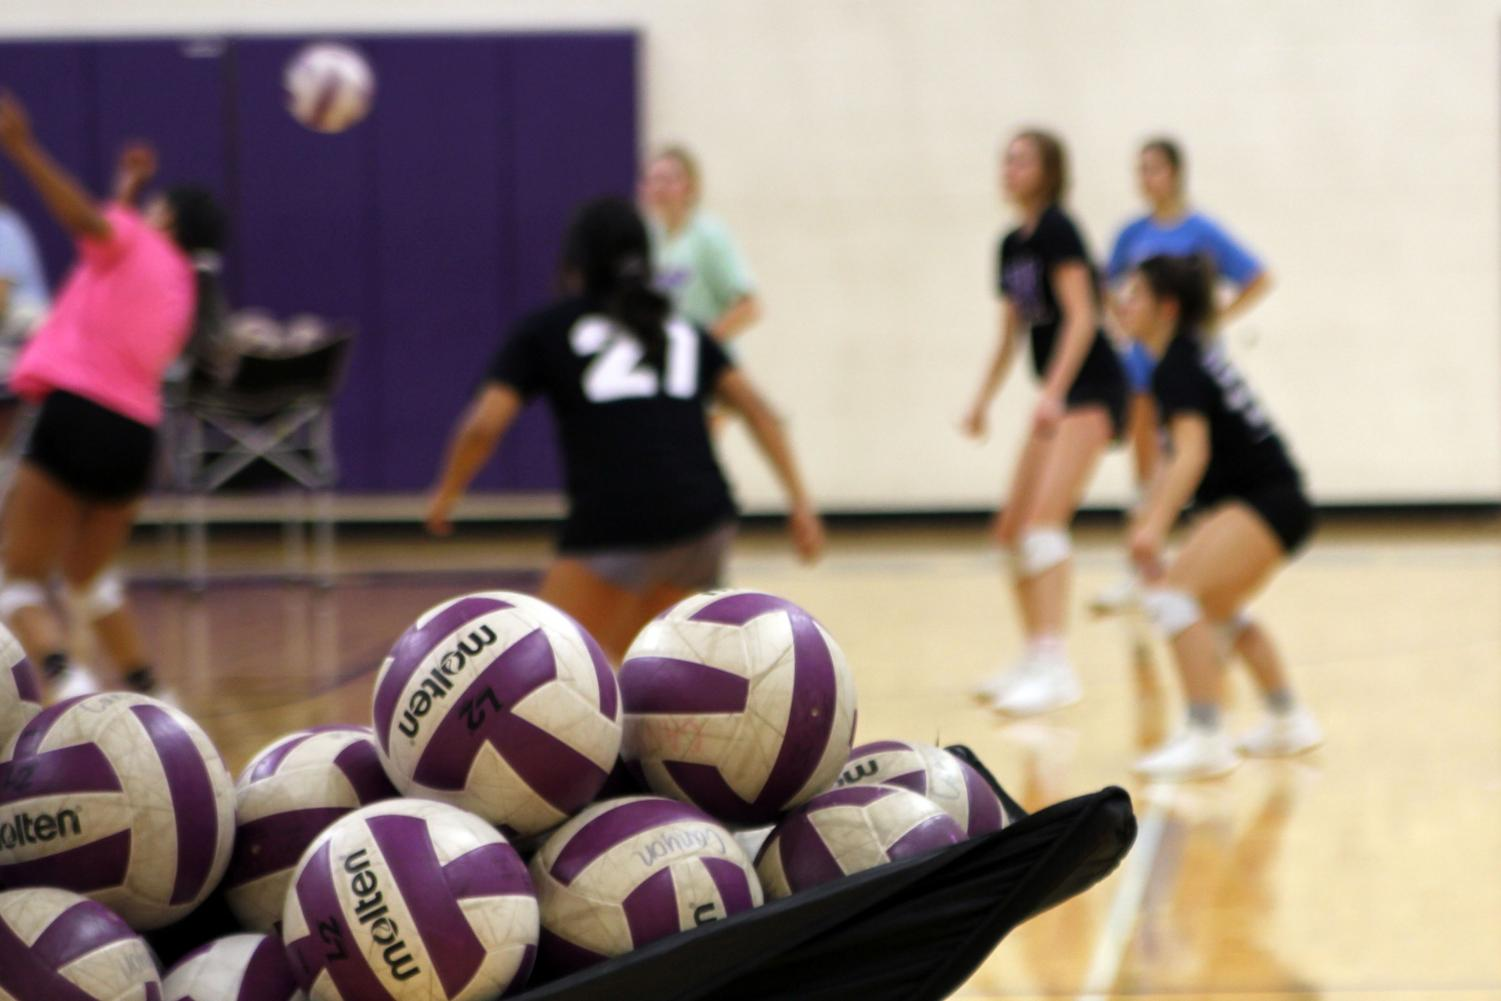 The volleyball team practices first period in preparation for their game against Amarillo High.